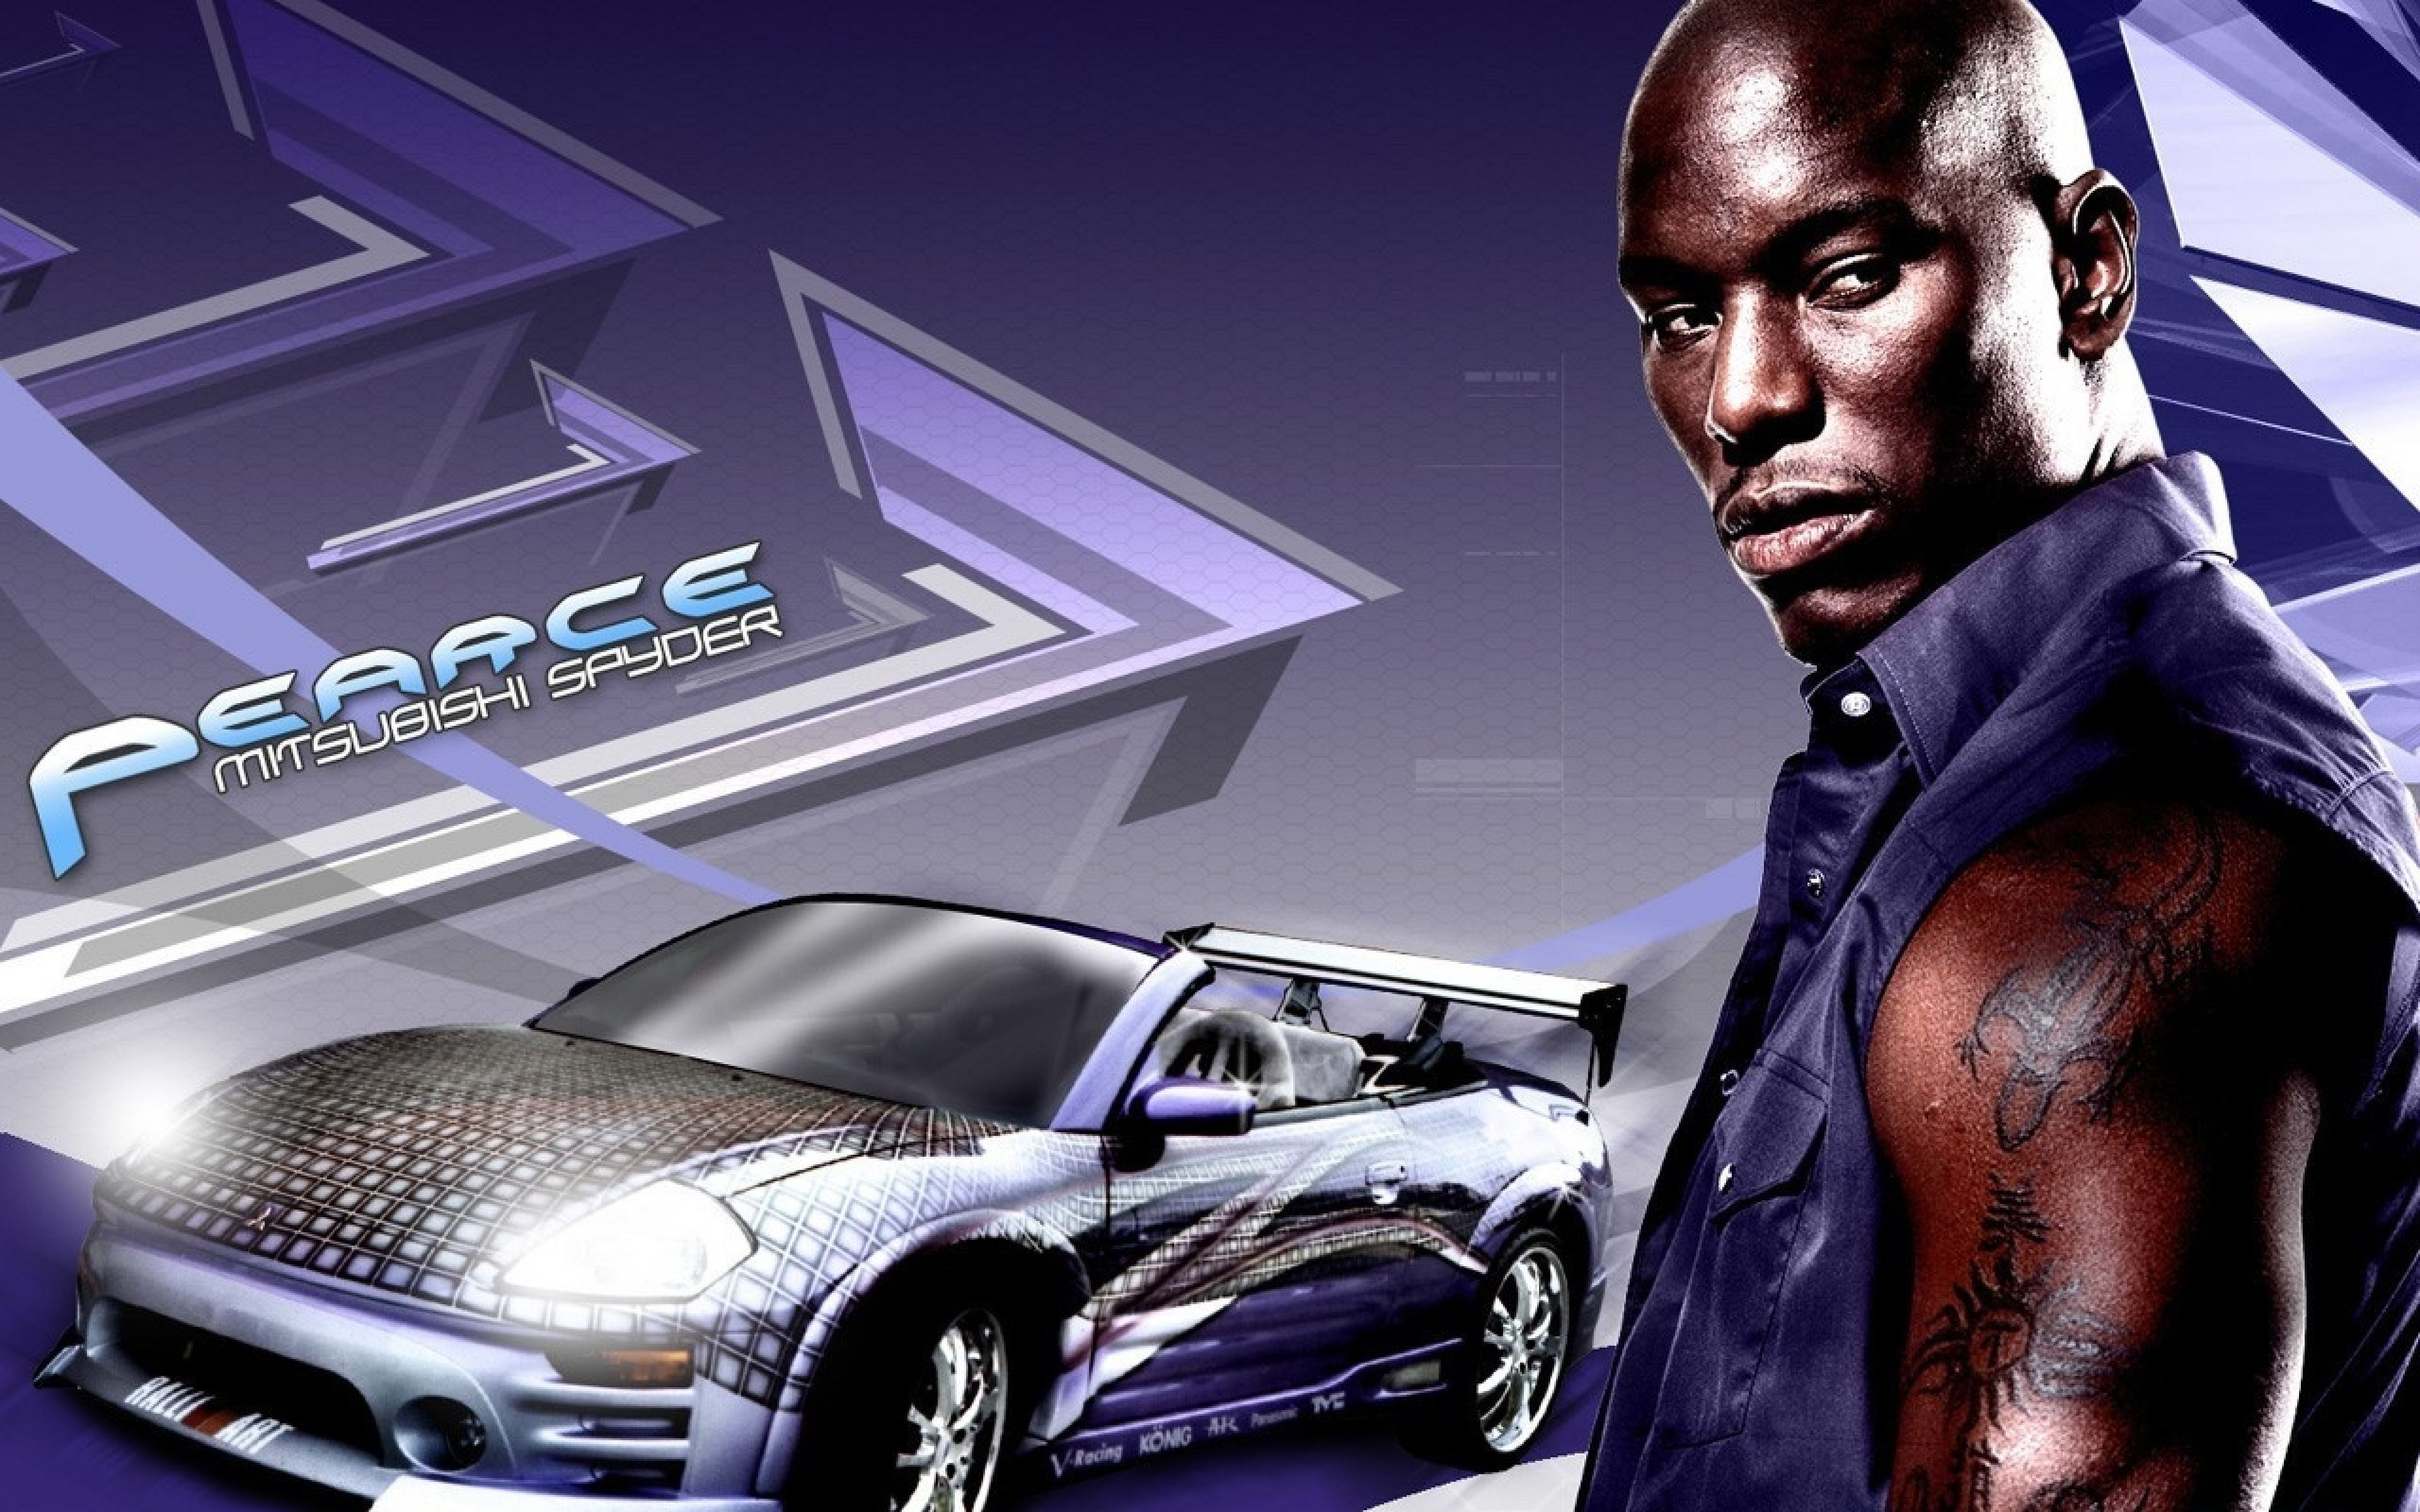 2 Fast 2 Furious Wallpapers HD